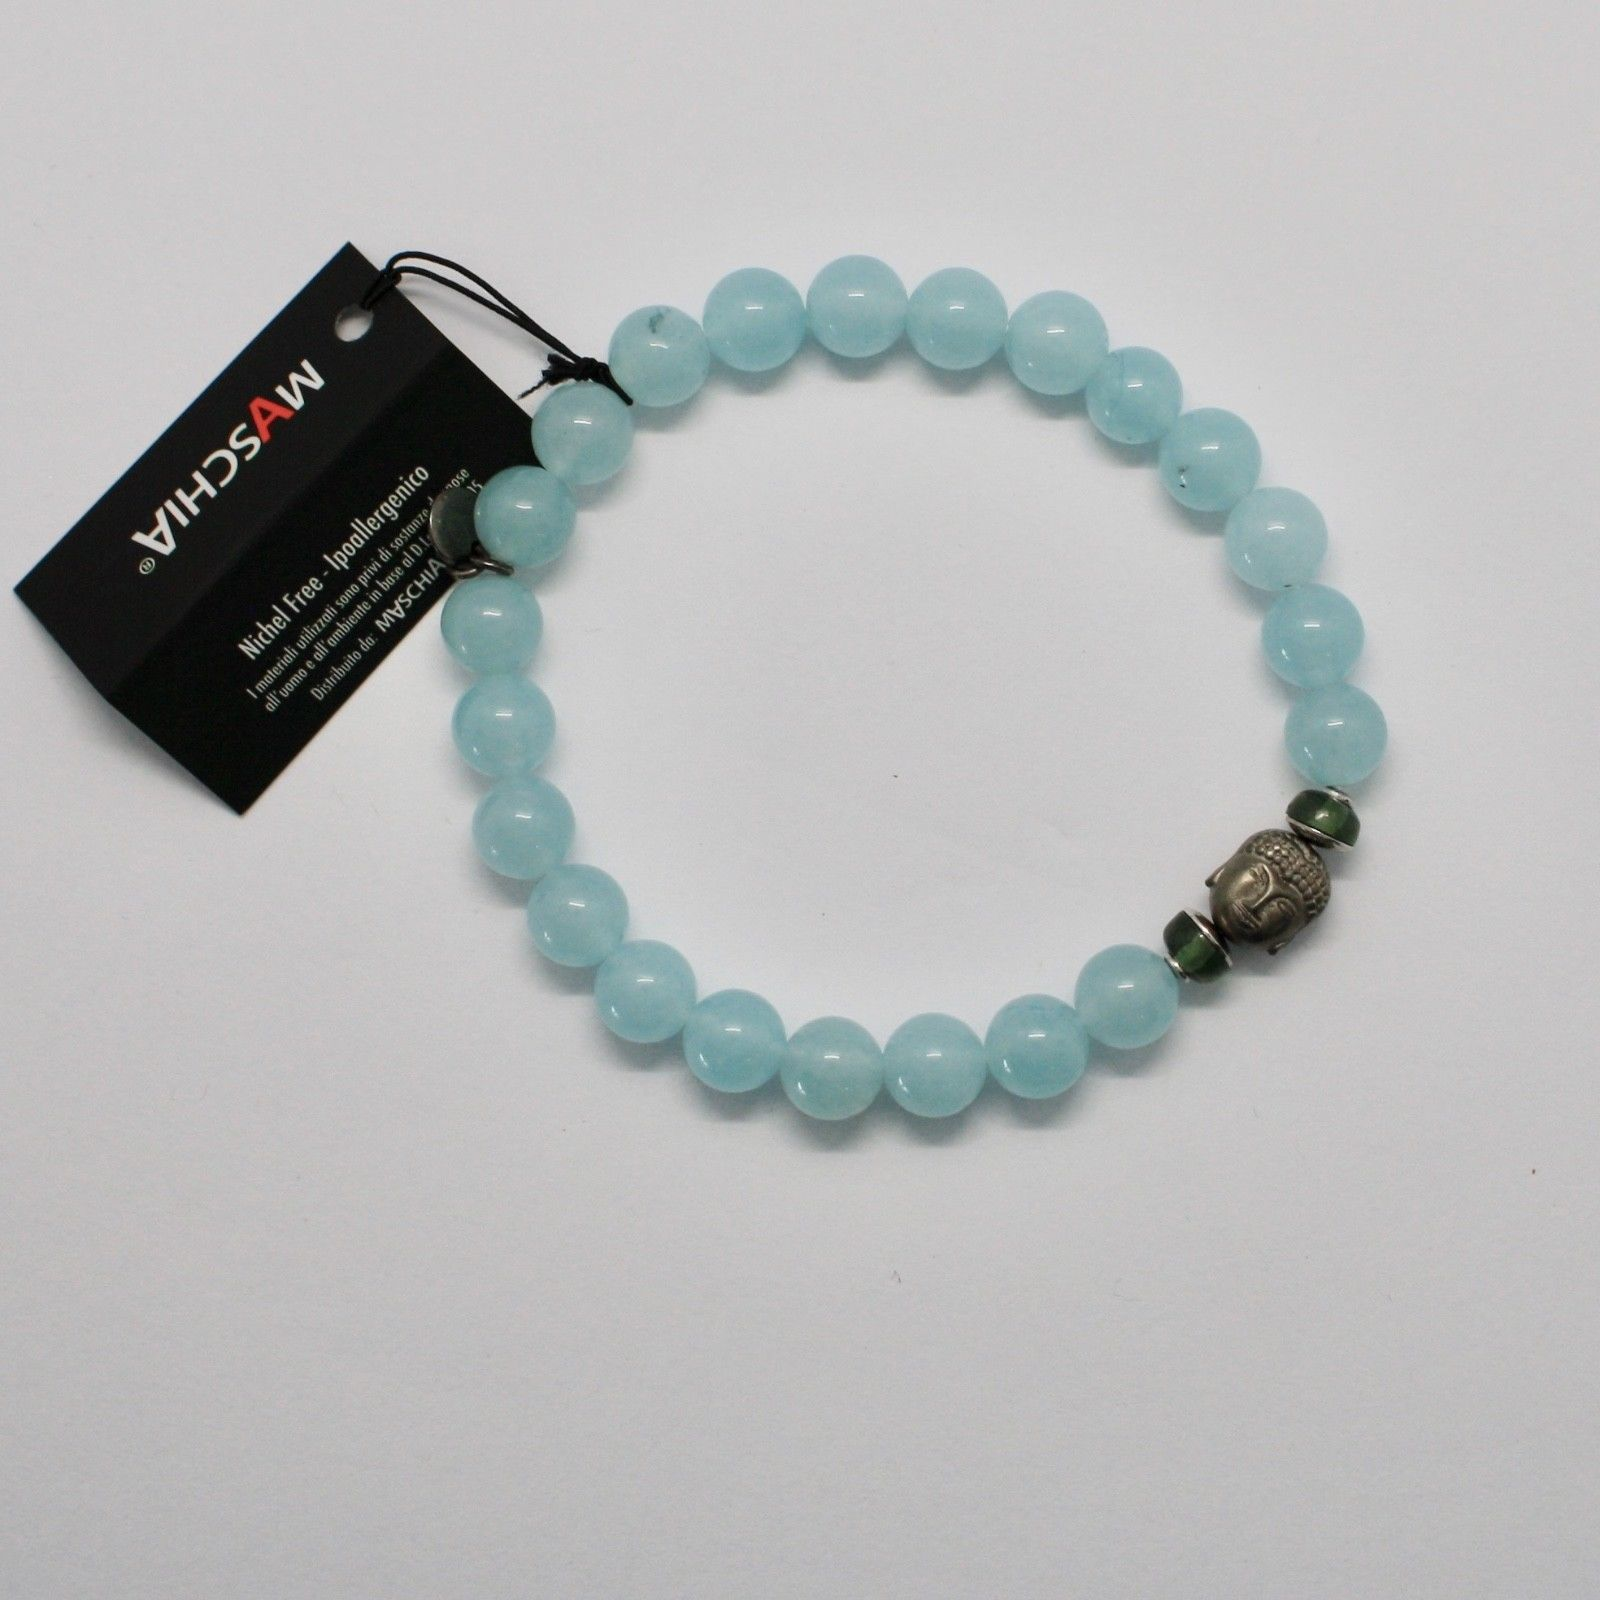 Silver 925 Bracelet with Hematite Jade Blue BPR-5 Made in Italy by Maschia